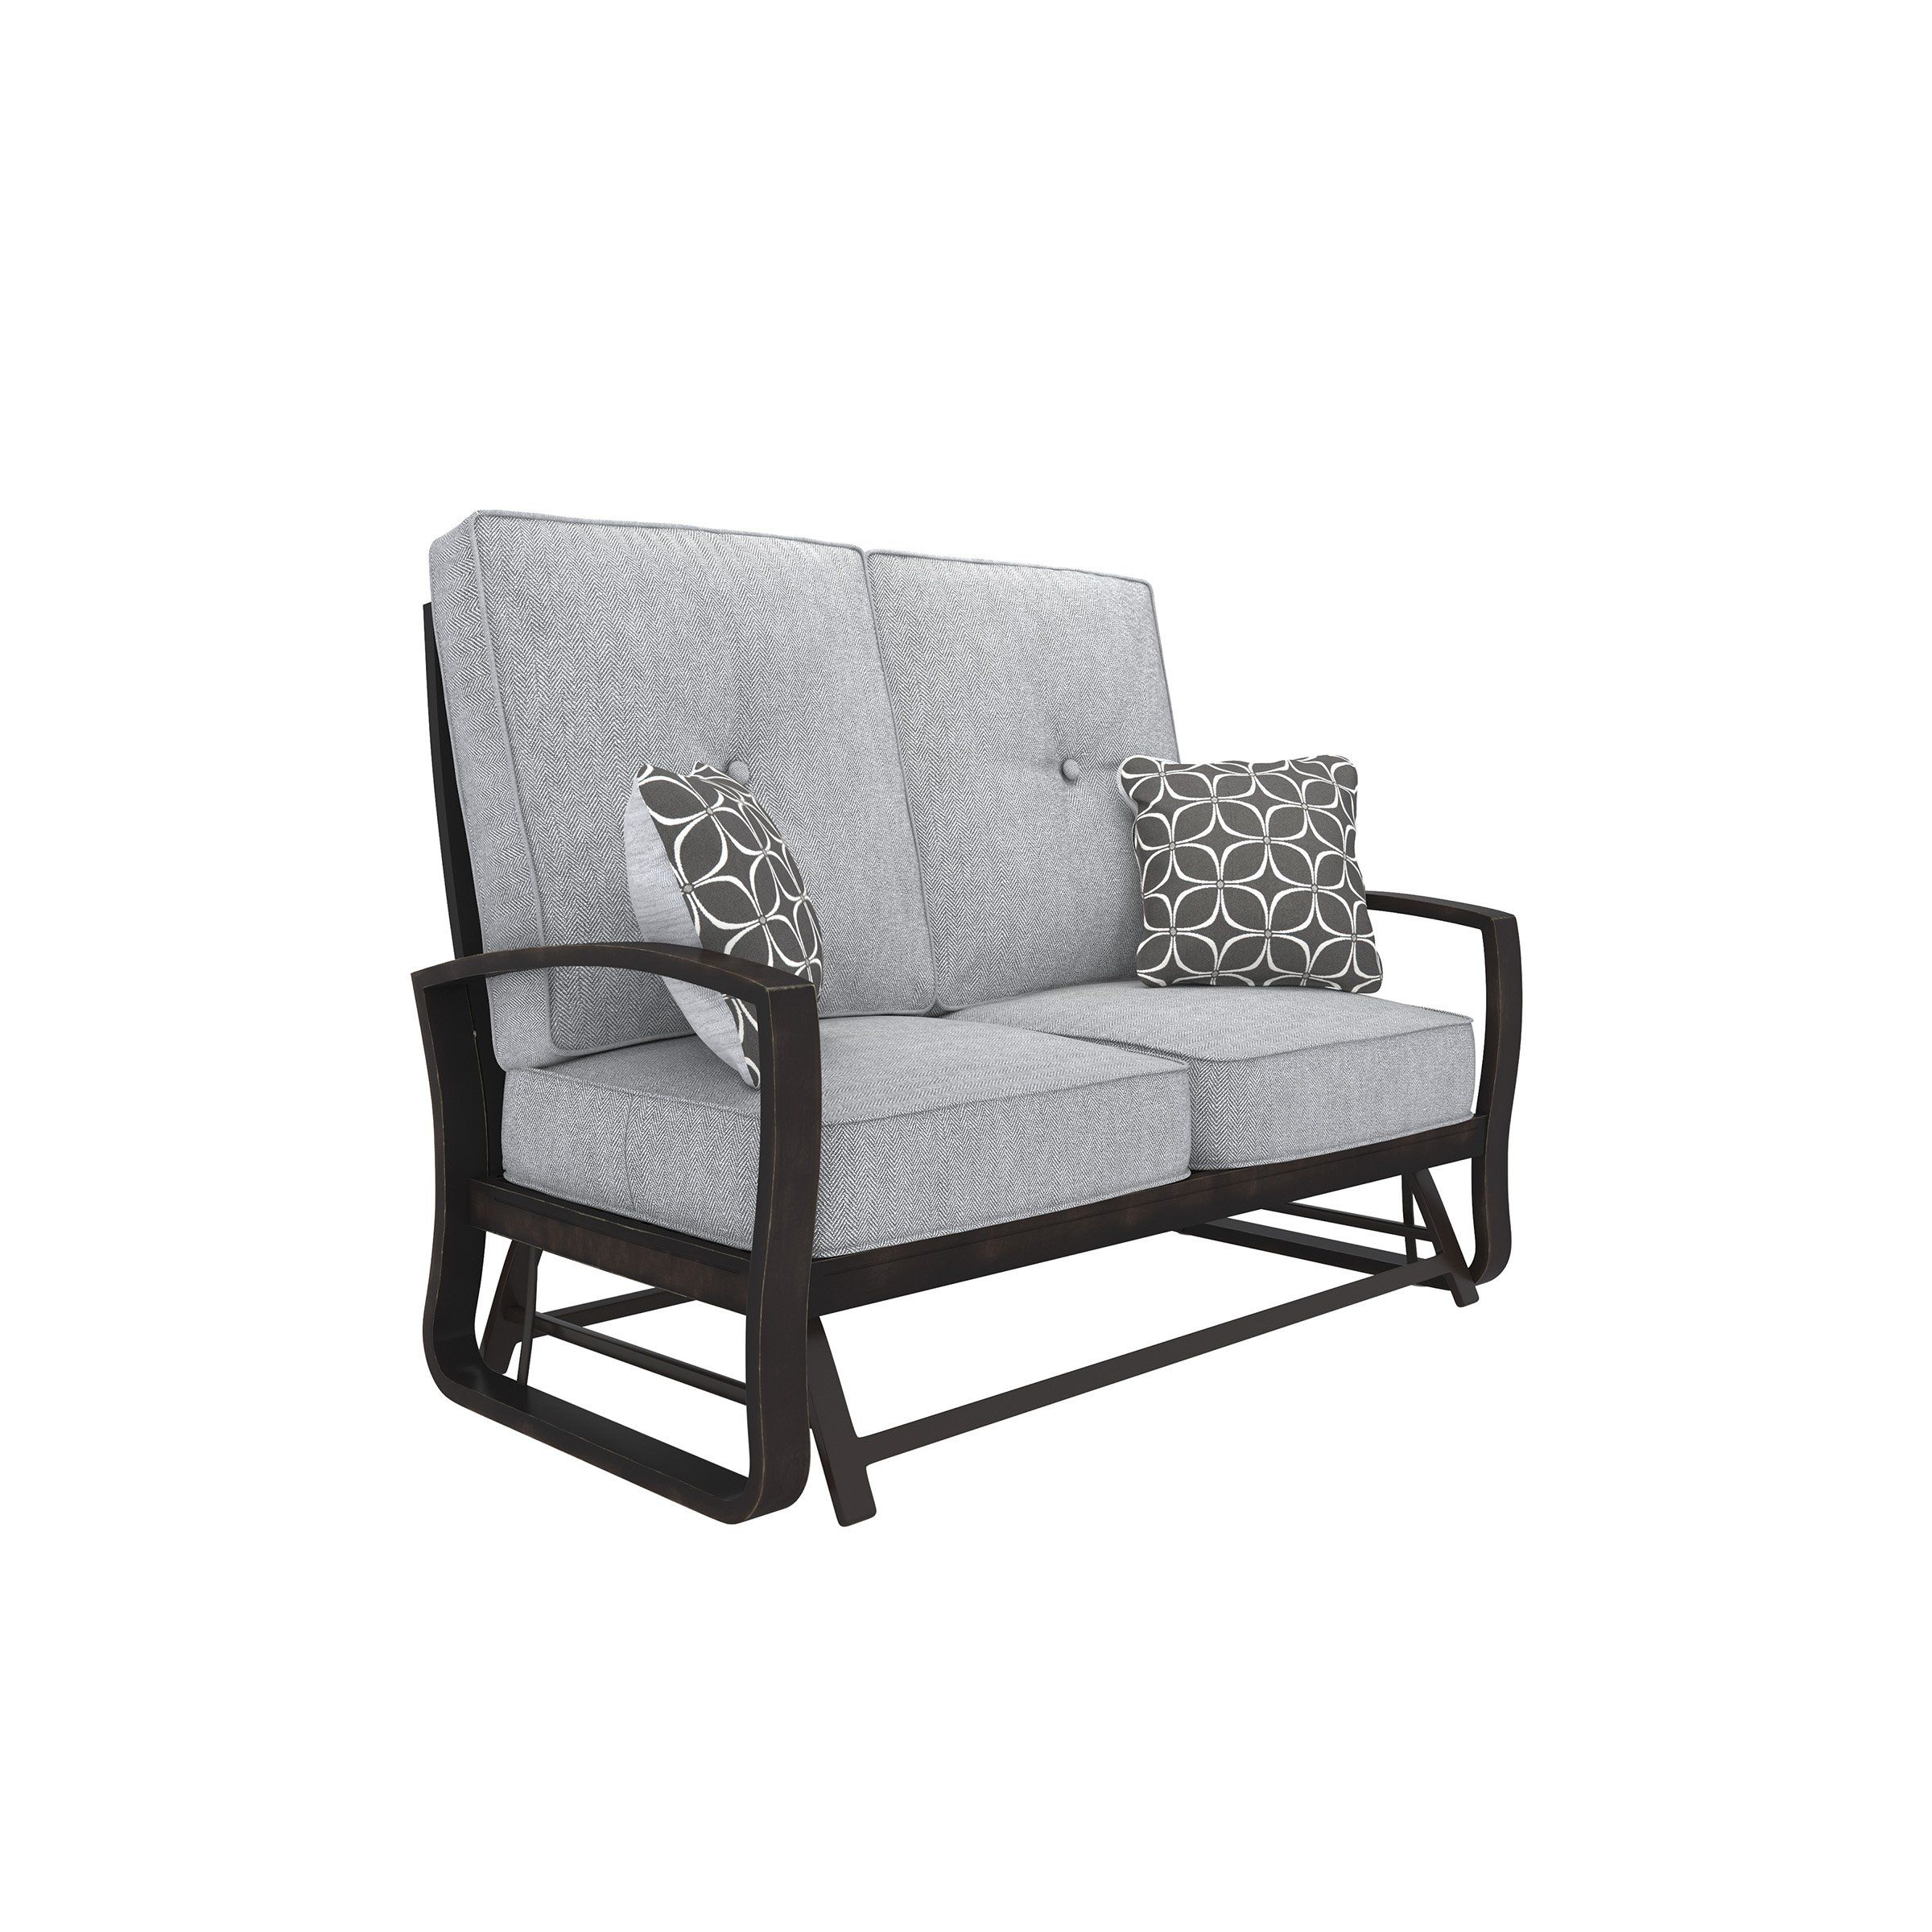 Featured Image of Outdoor Loveseat Gliders With Cushion